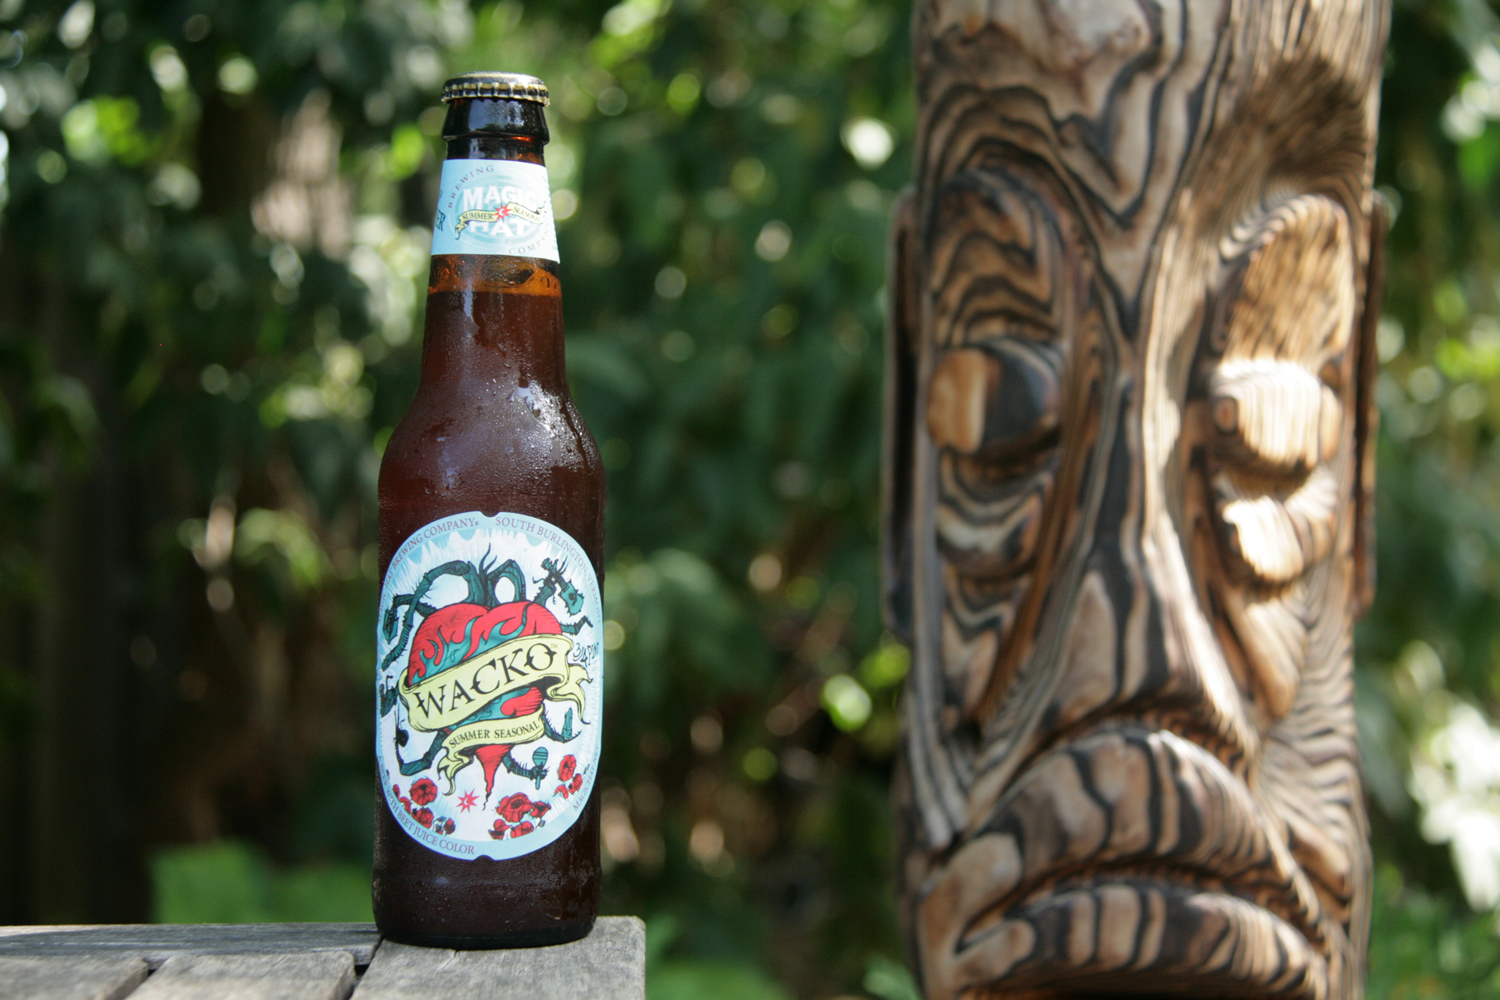 Wacko summer vegetable beer from Magic Hat is made with beet juice.